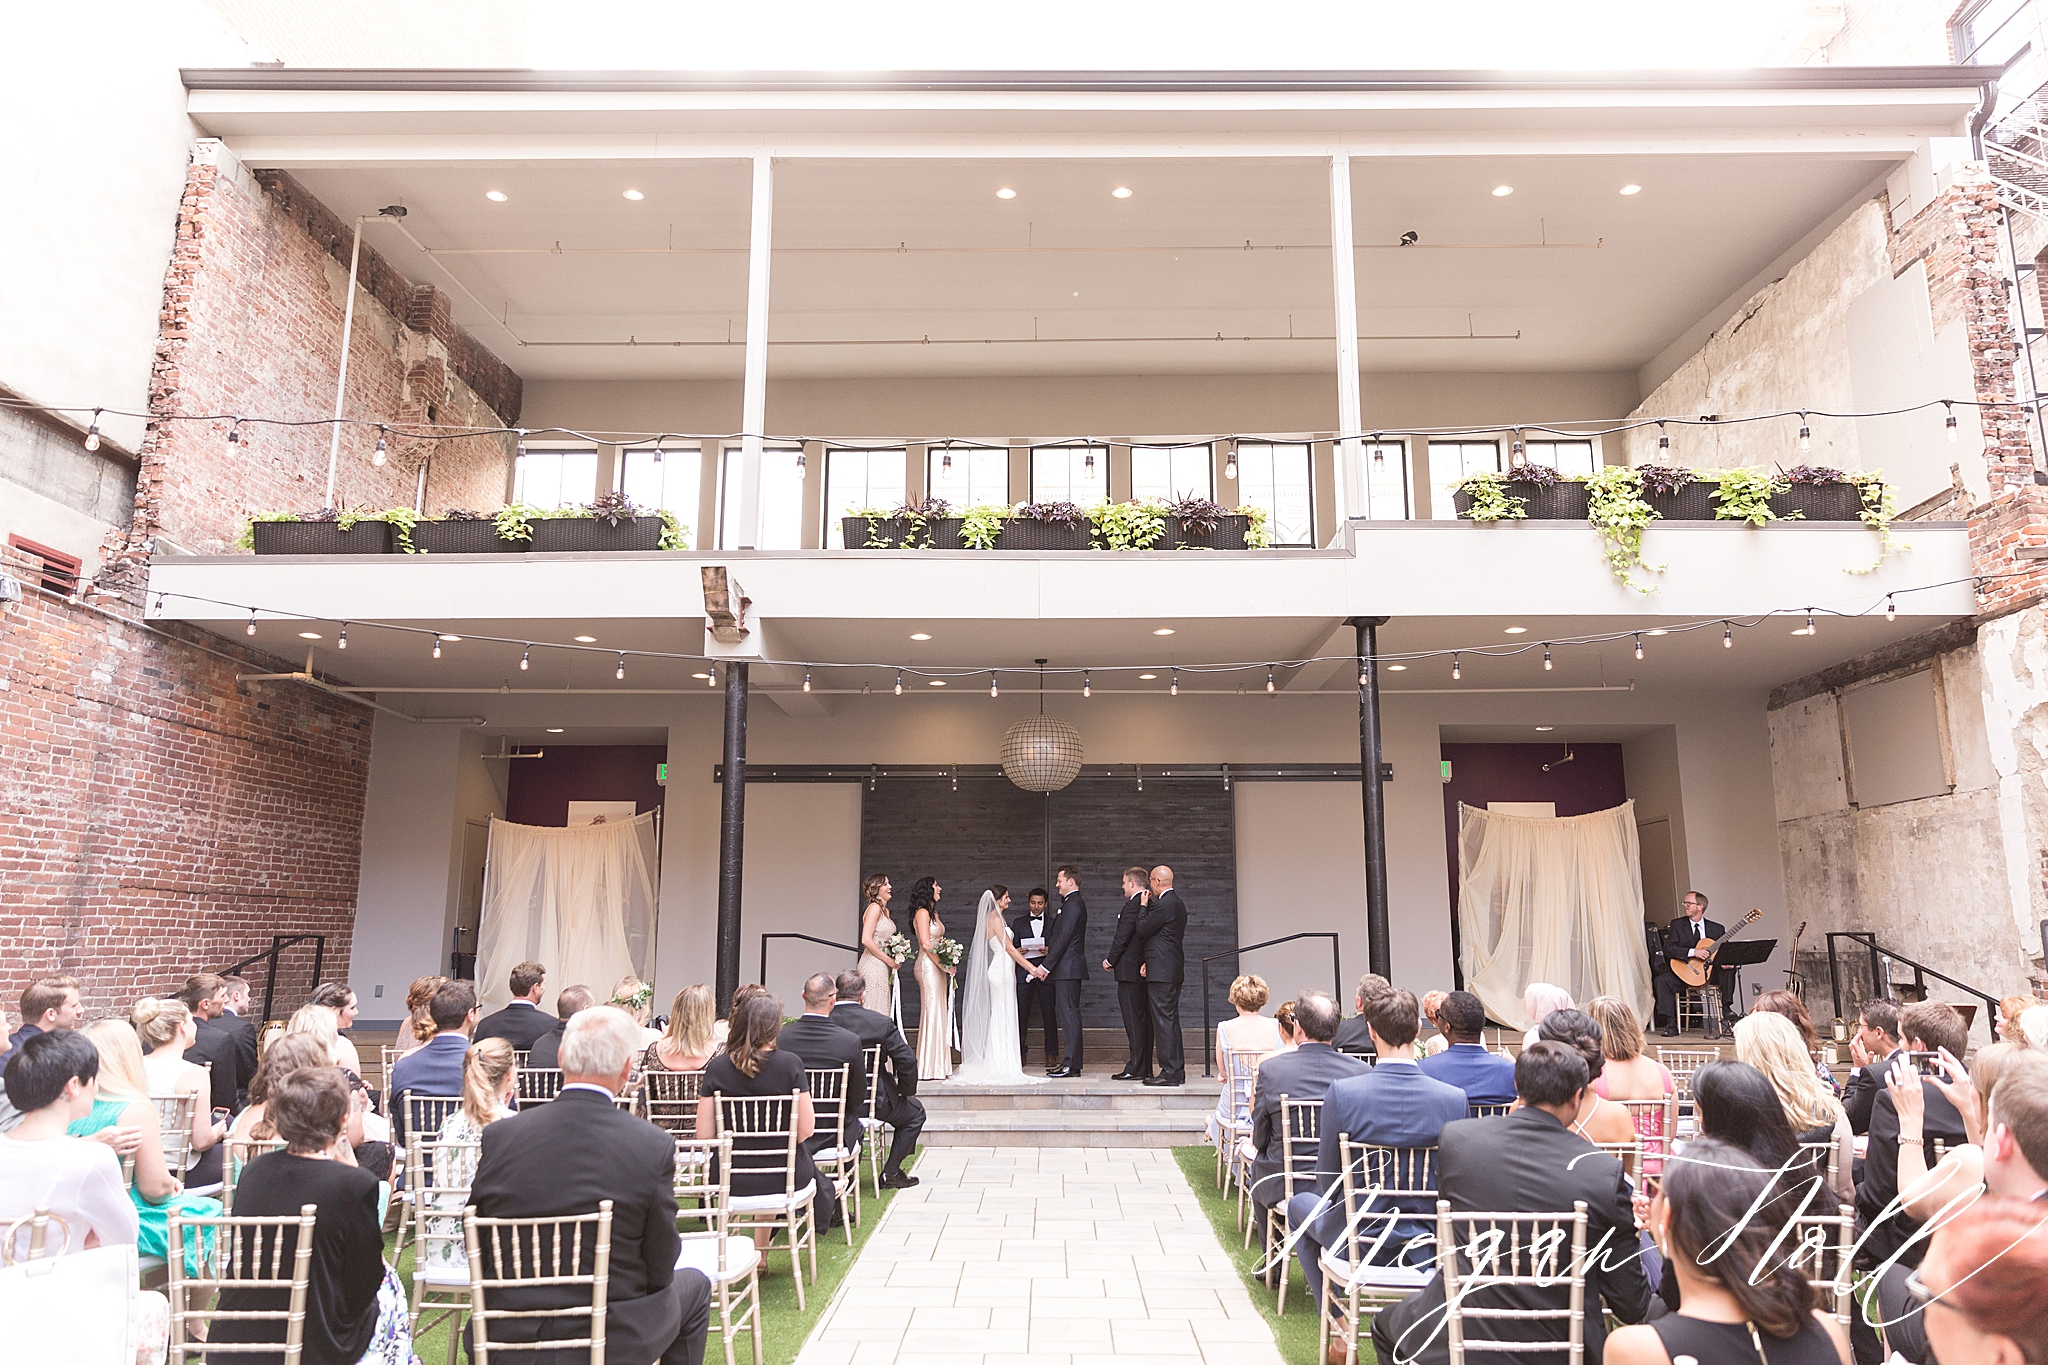 Hotel Covington is a top wedding venue in Cincinnati